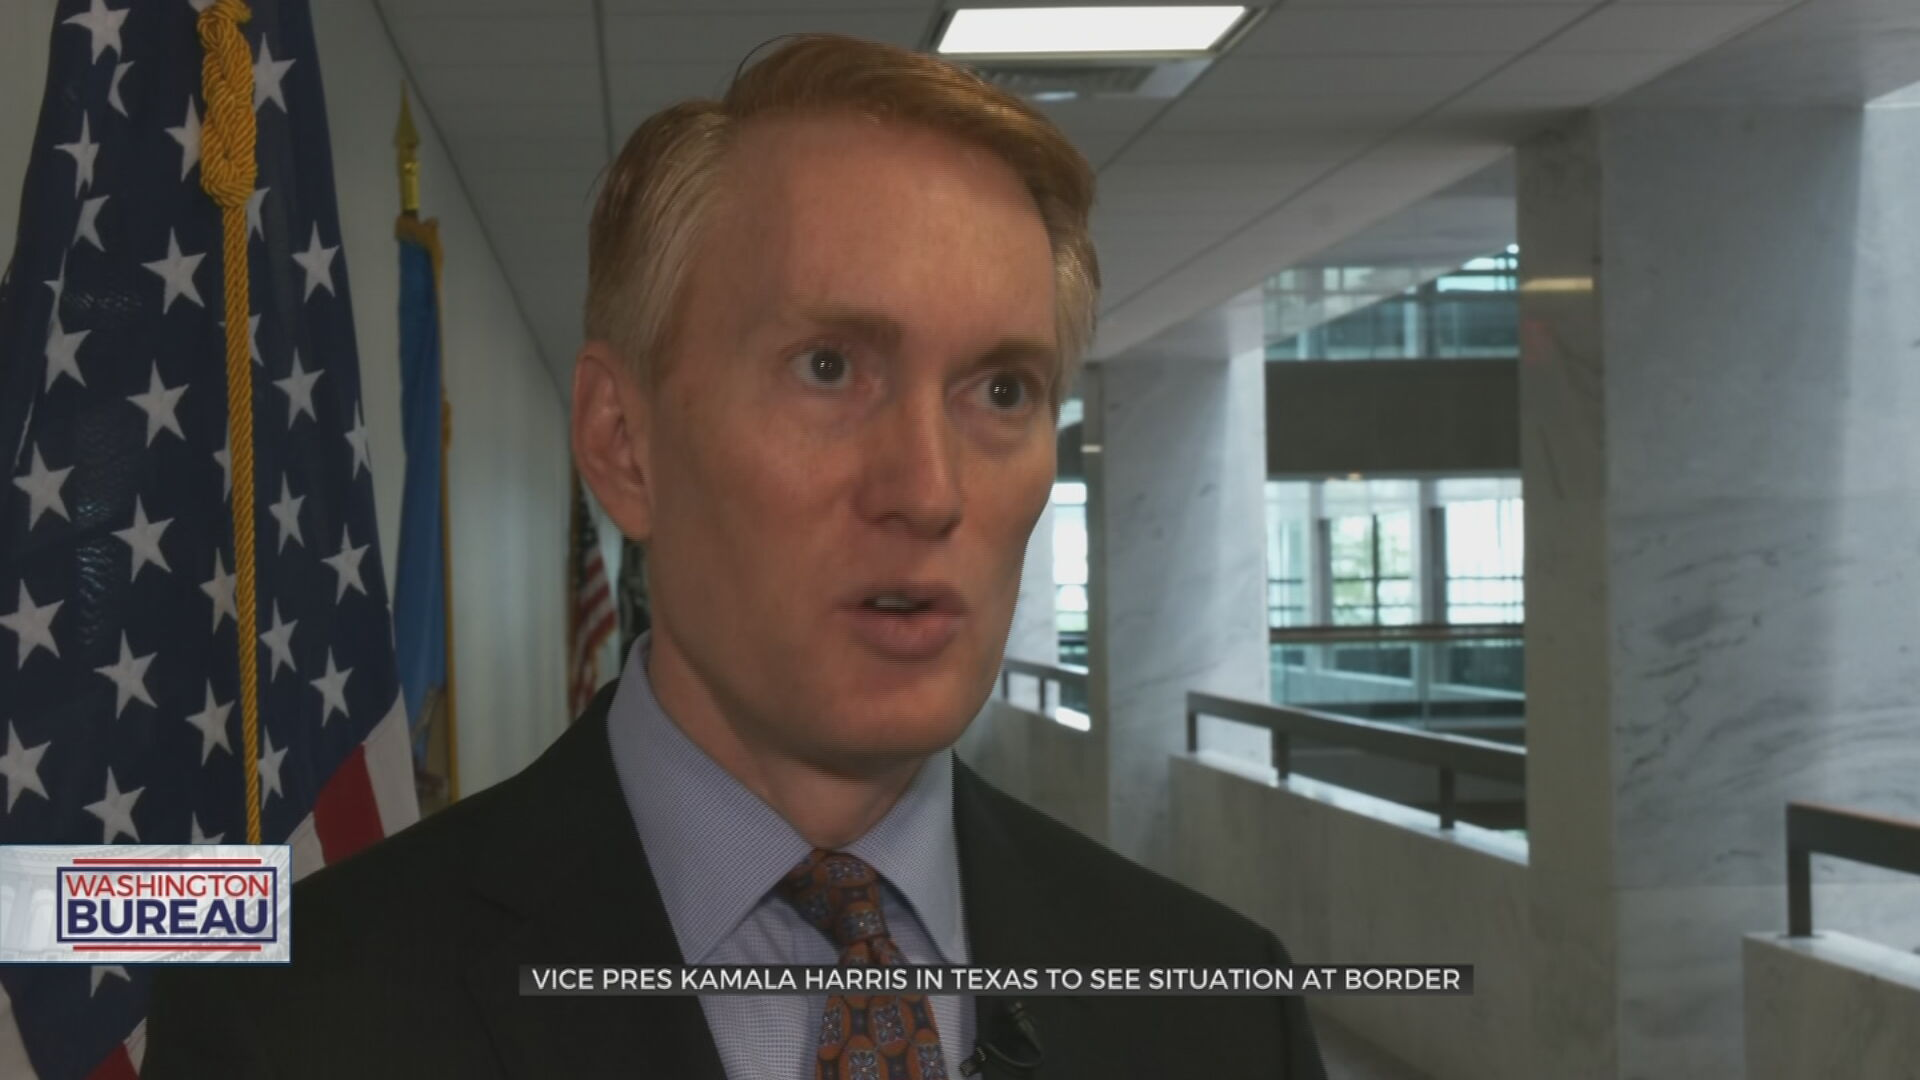 Sen. Lankford Hopes VP Harris' Trip To Texas Provides Accurate Context For Border Situation